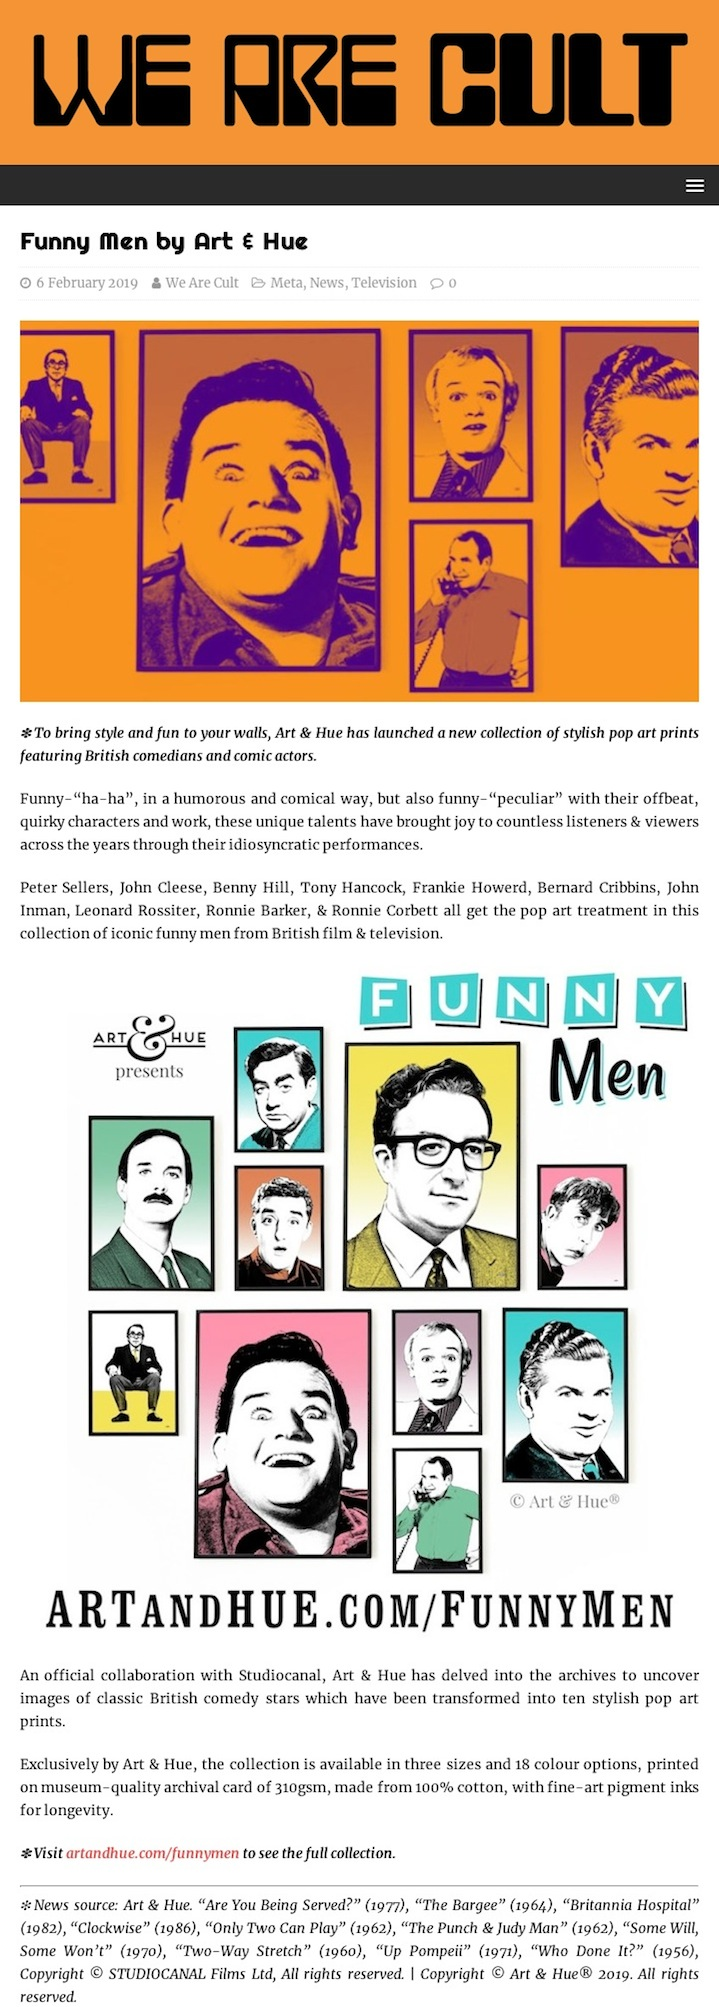 We Are Cult Funny Men